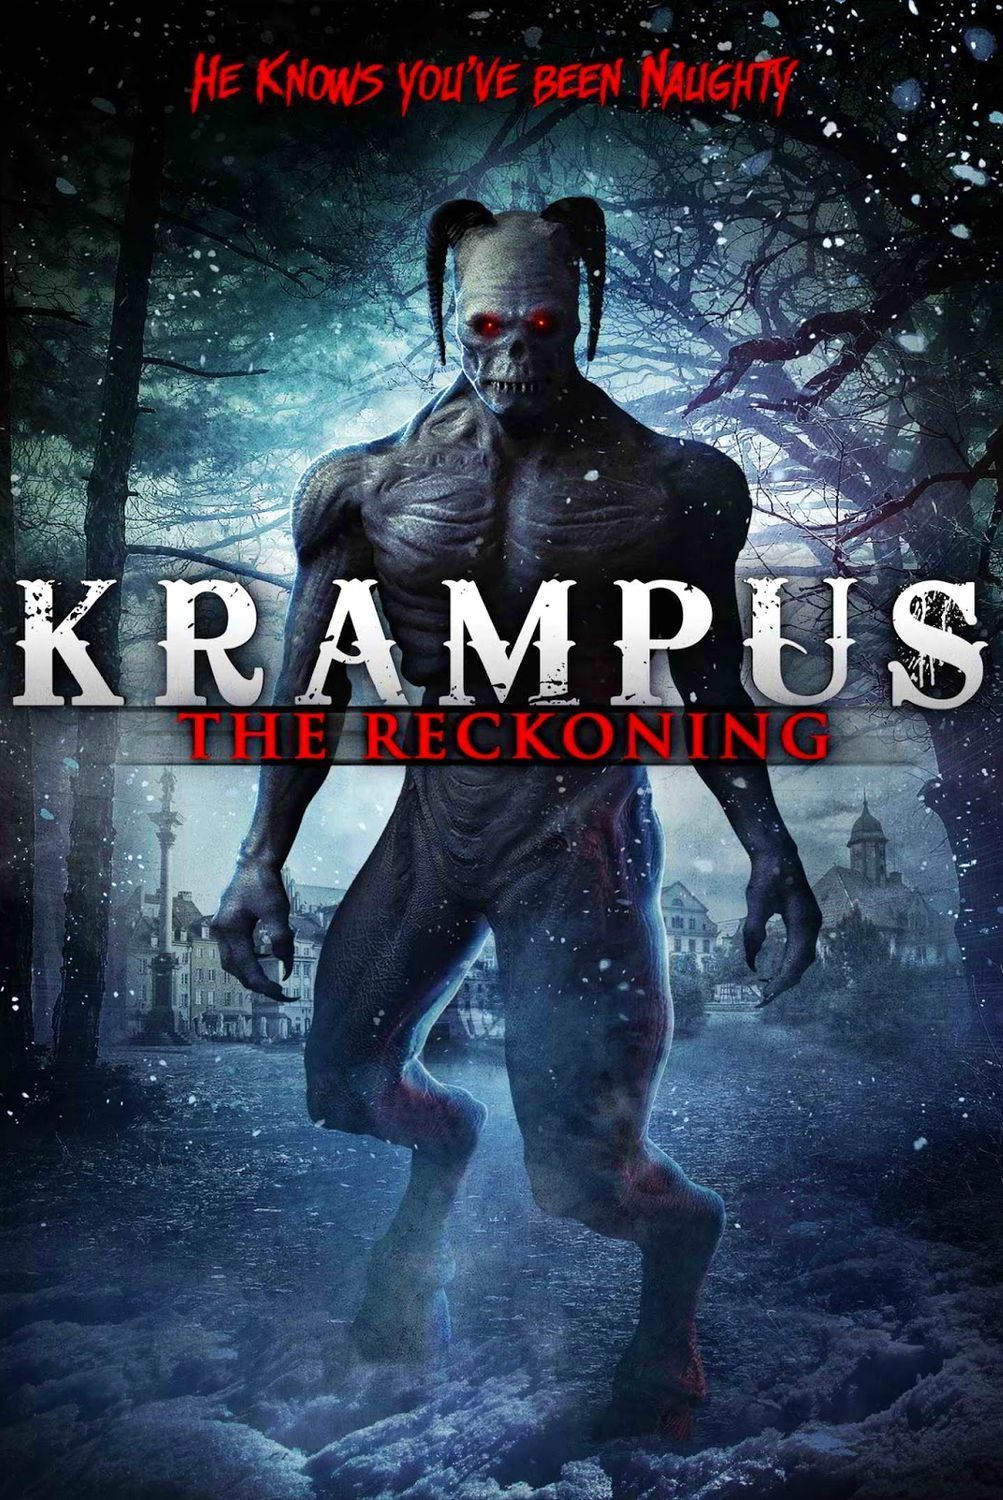 A Series of Krampus Films (2013-2016) Reviewed - Project